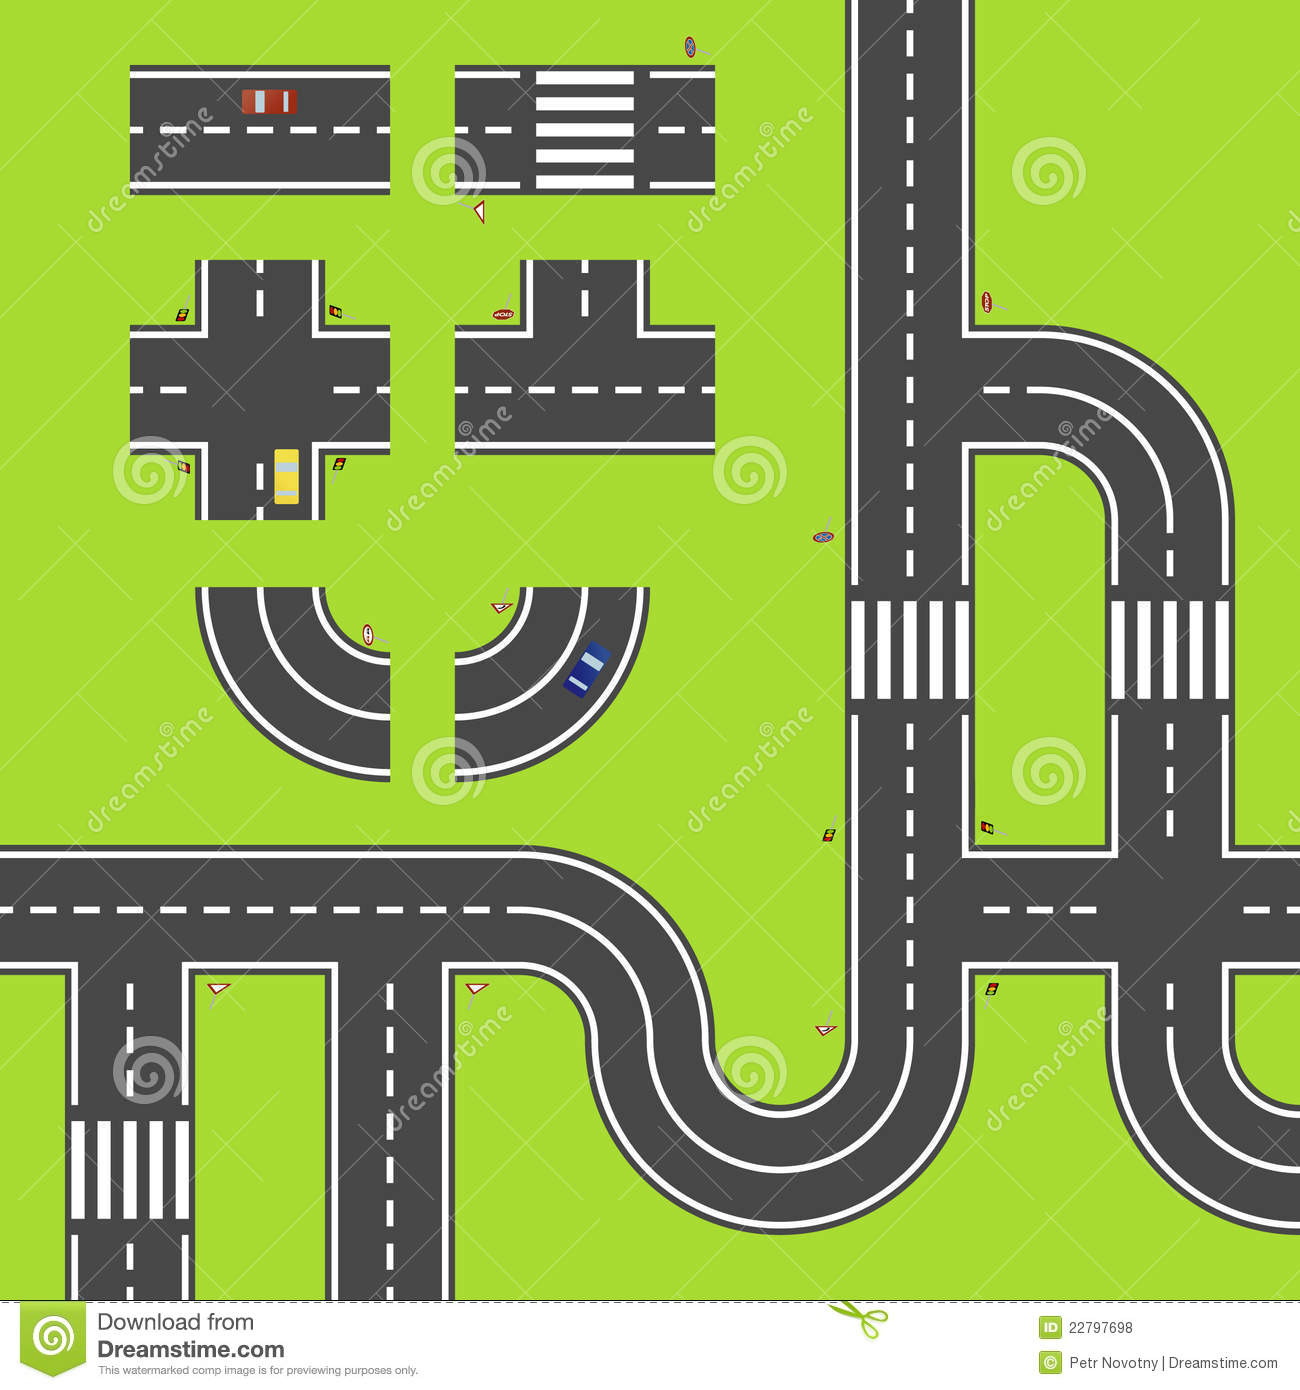 Clipart road map picture royalty free Simple road map clipart - ClipartFest picture royalty free